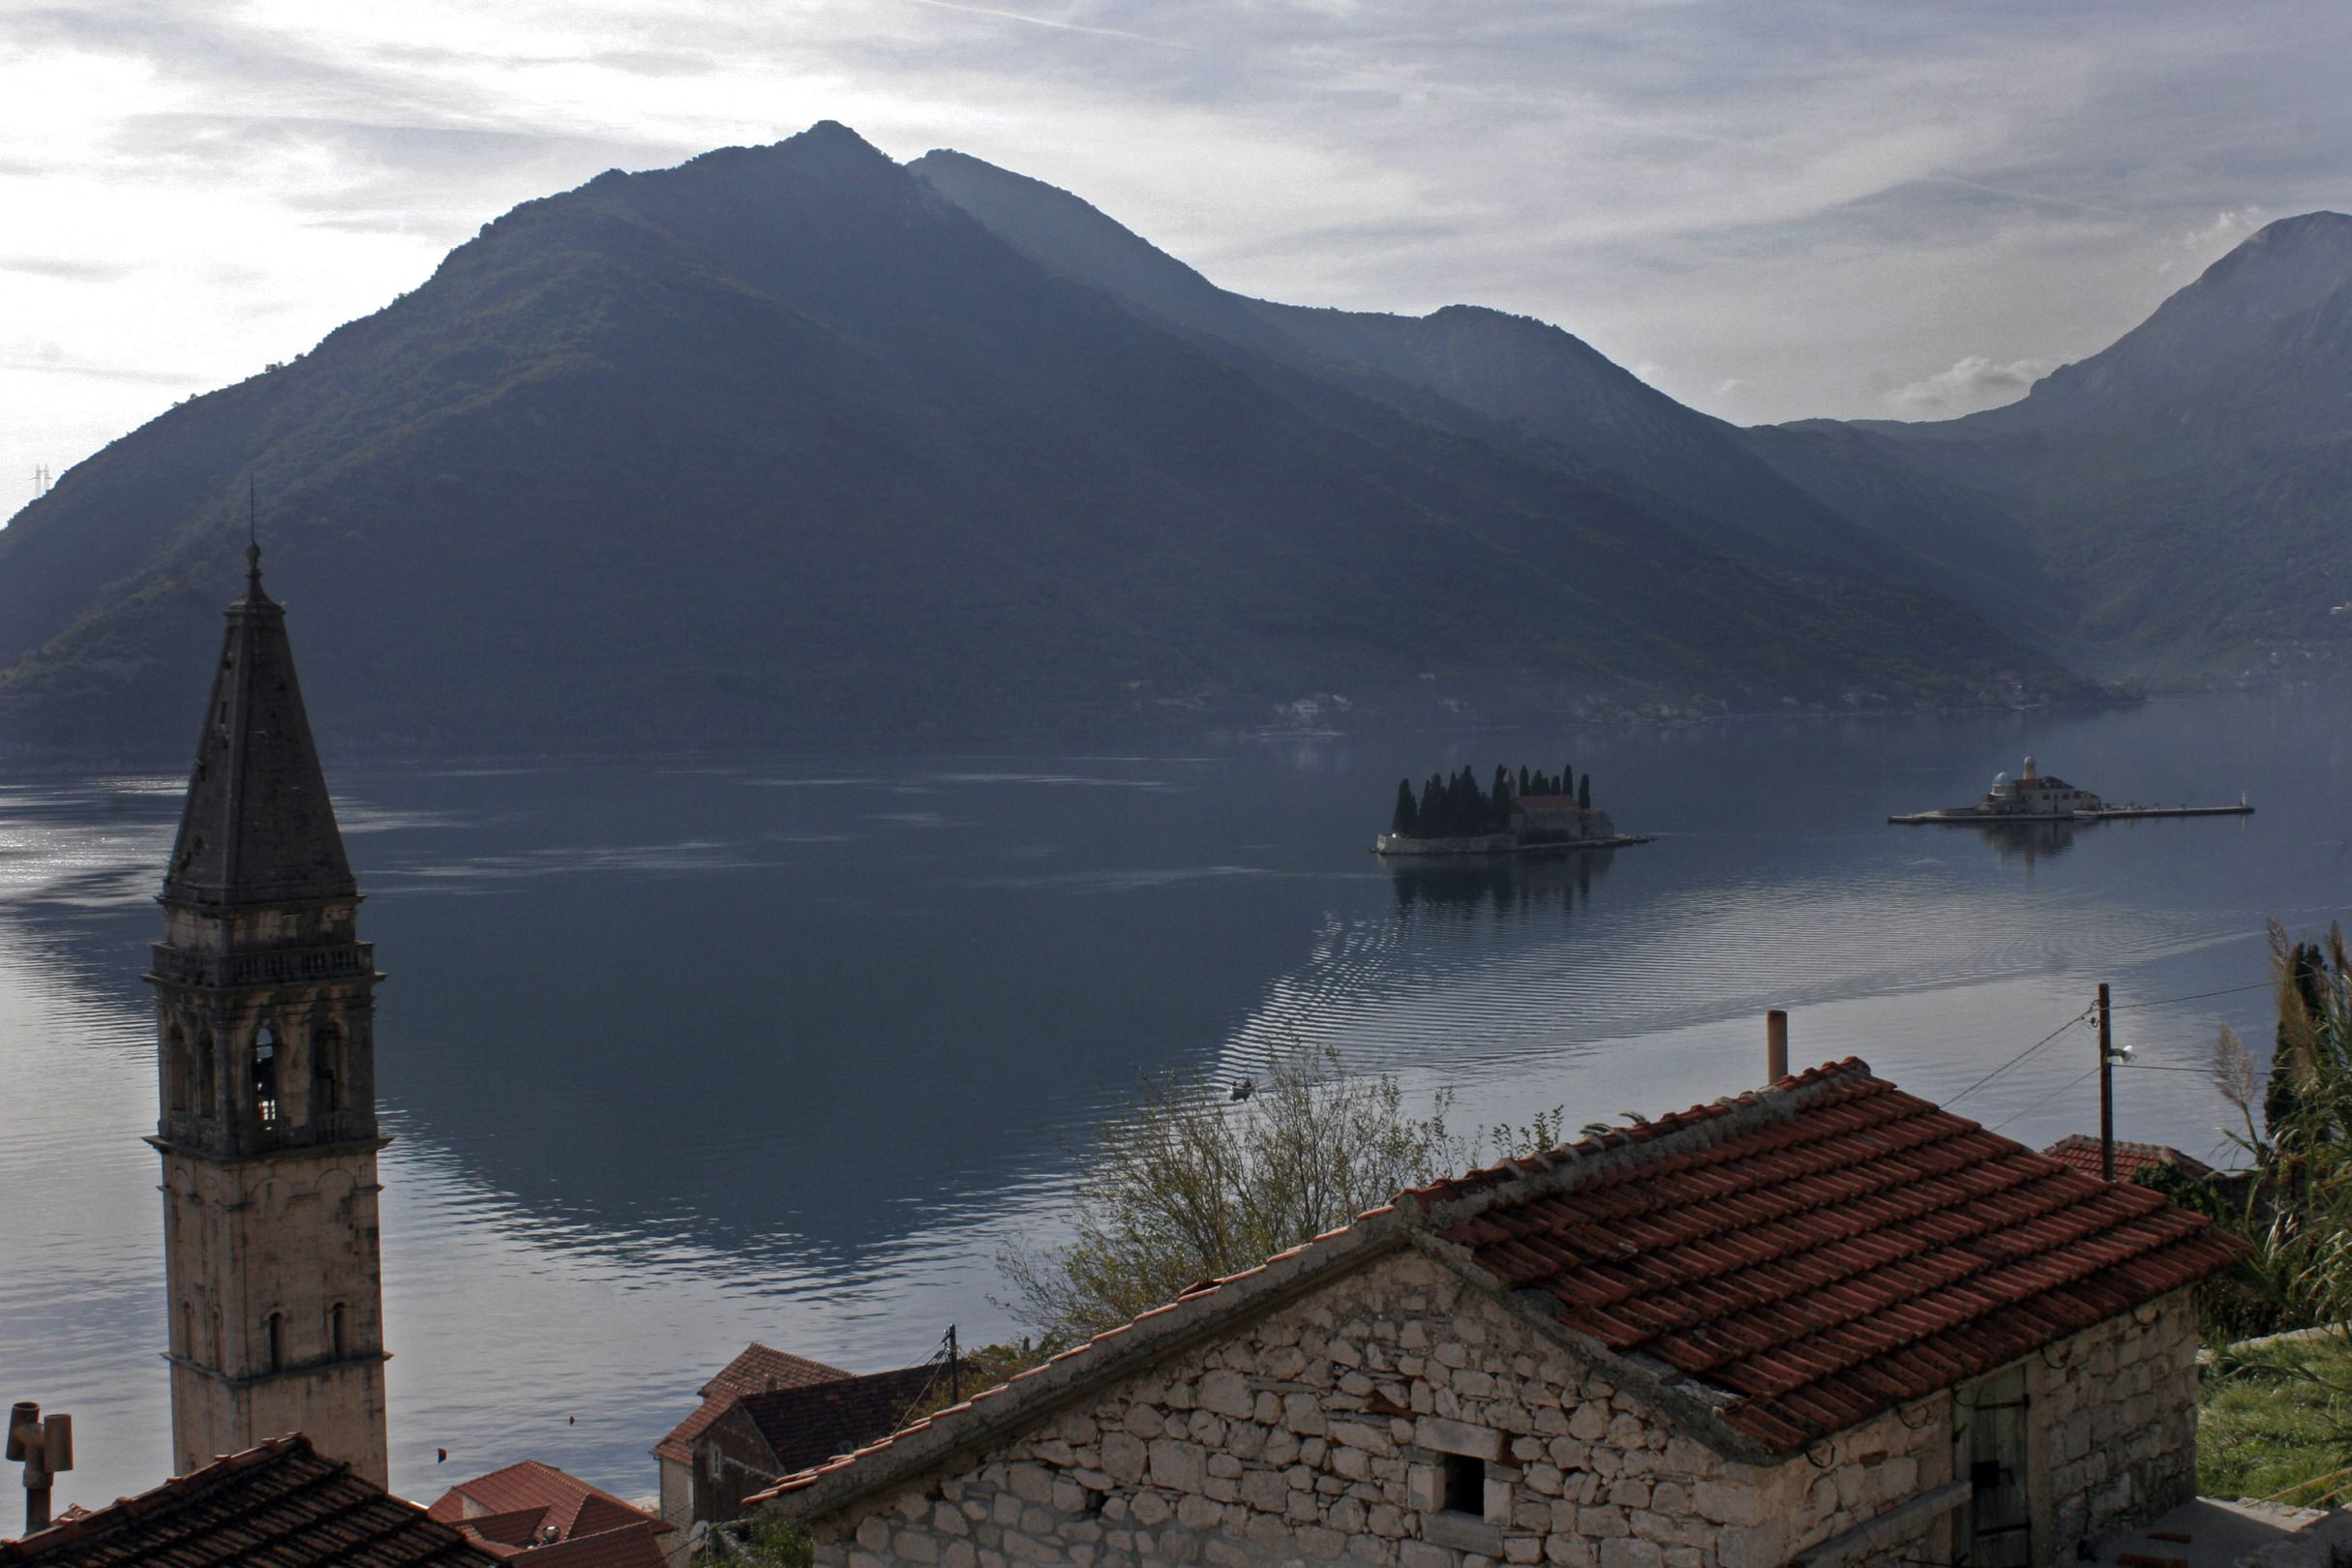 Balkan Tensions Flare as Montenegro Angers Serbs Over Church